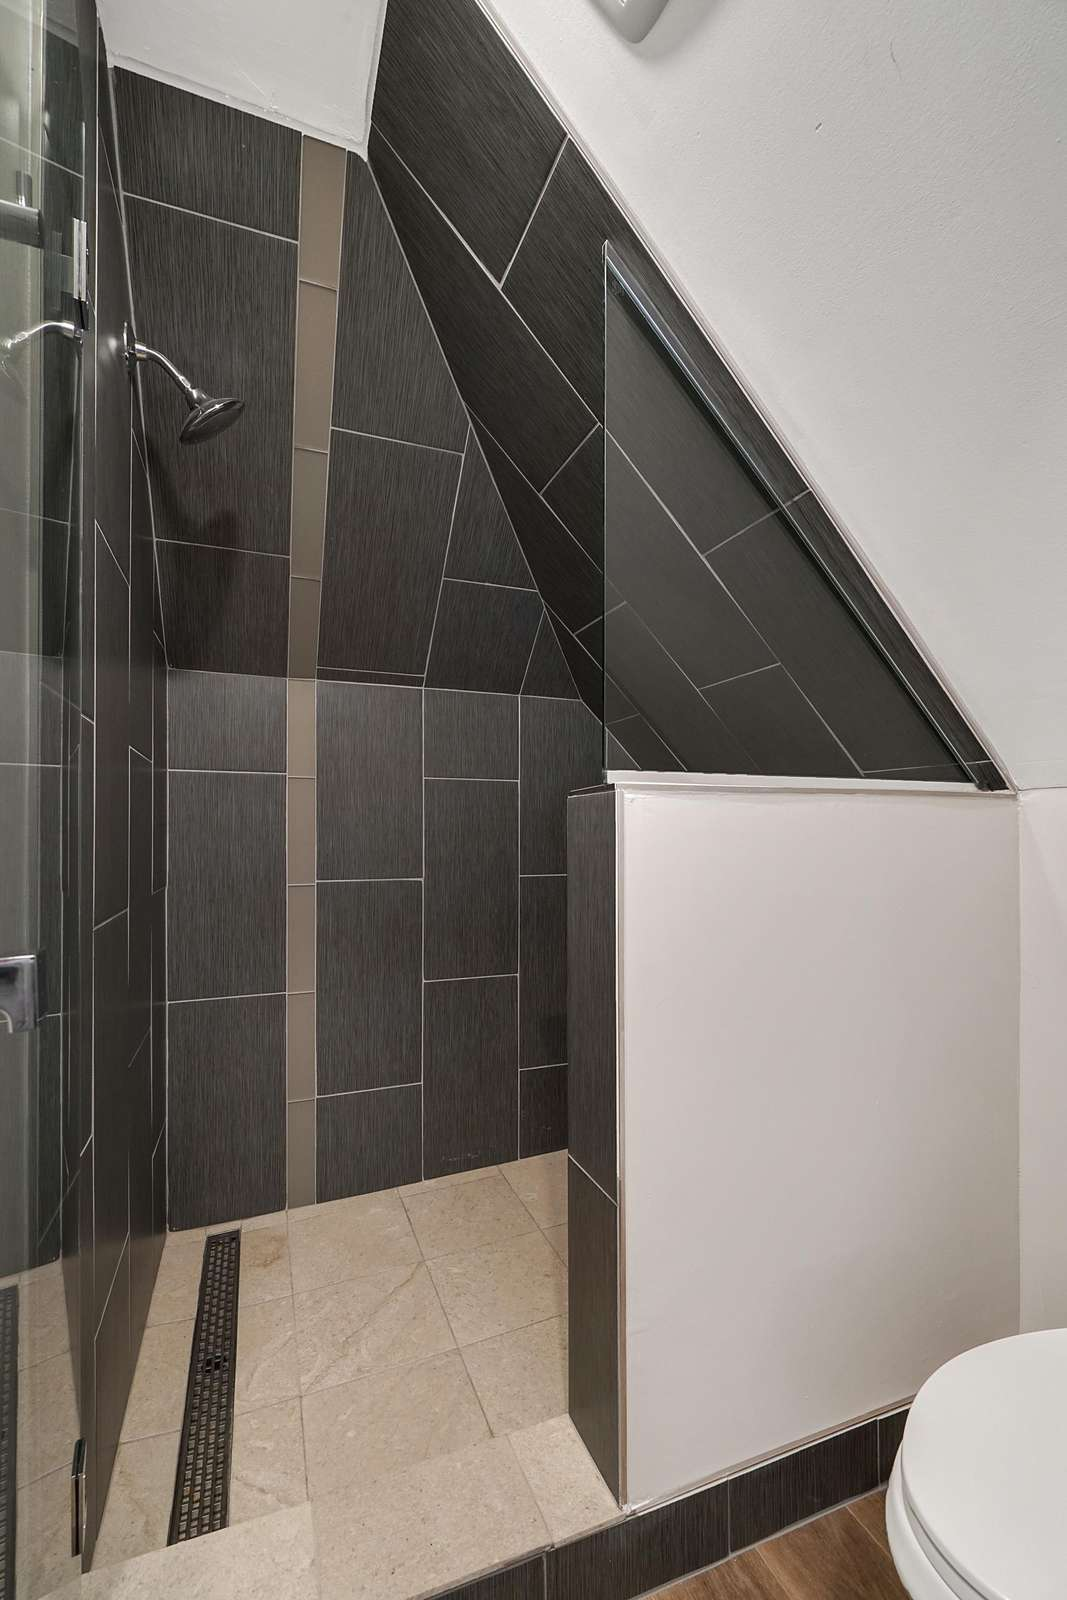 Amazing walk in shower for easy in/out access